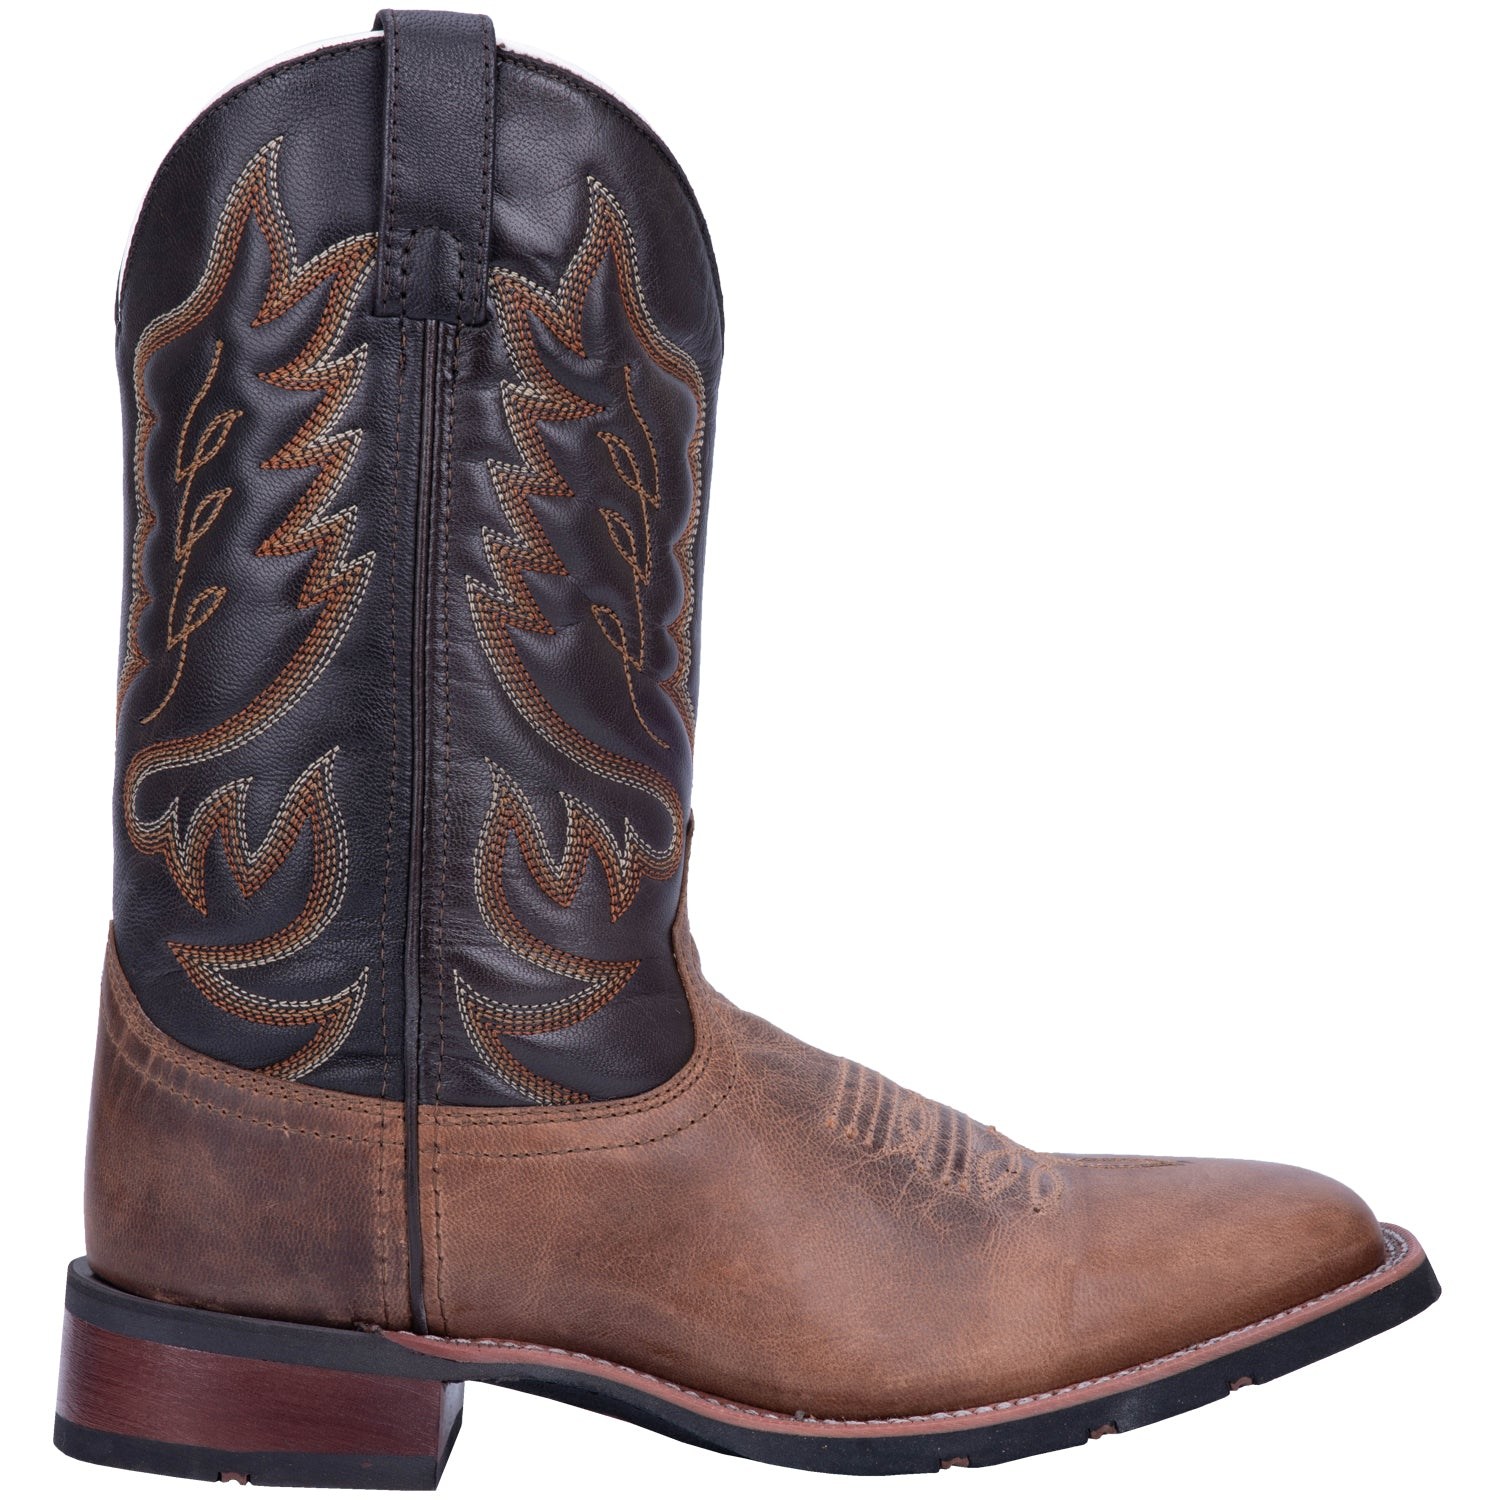 MONTANA LEATHER BOOT 4253953163306